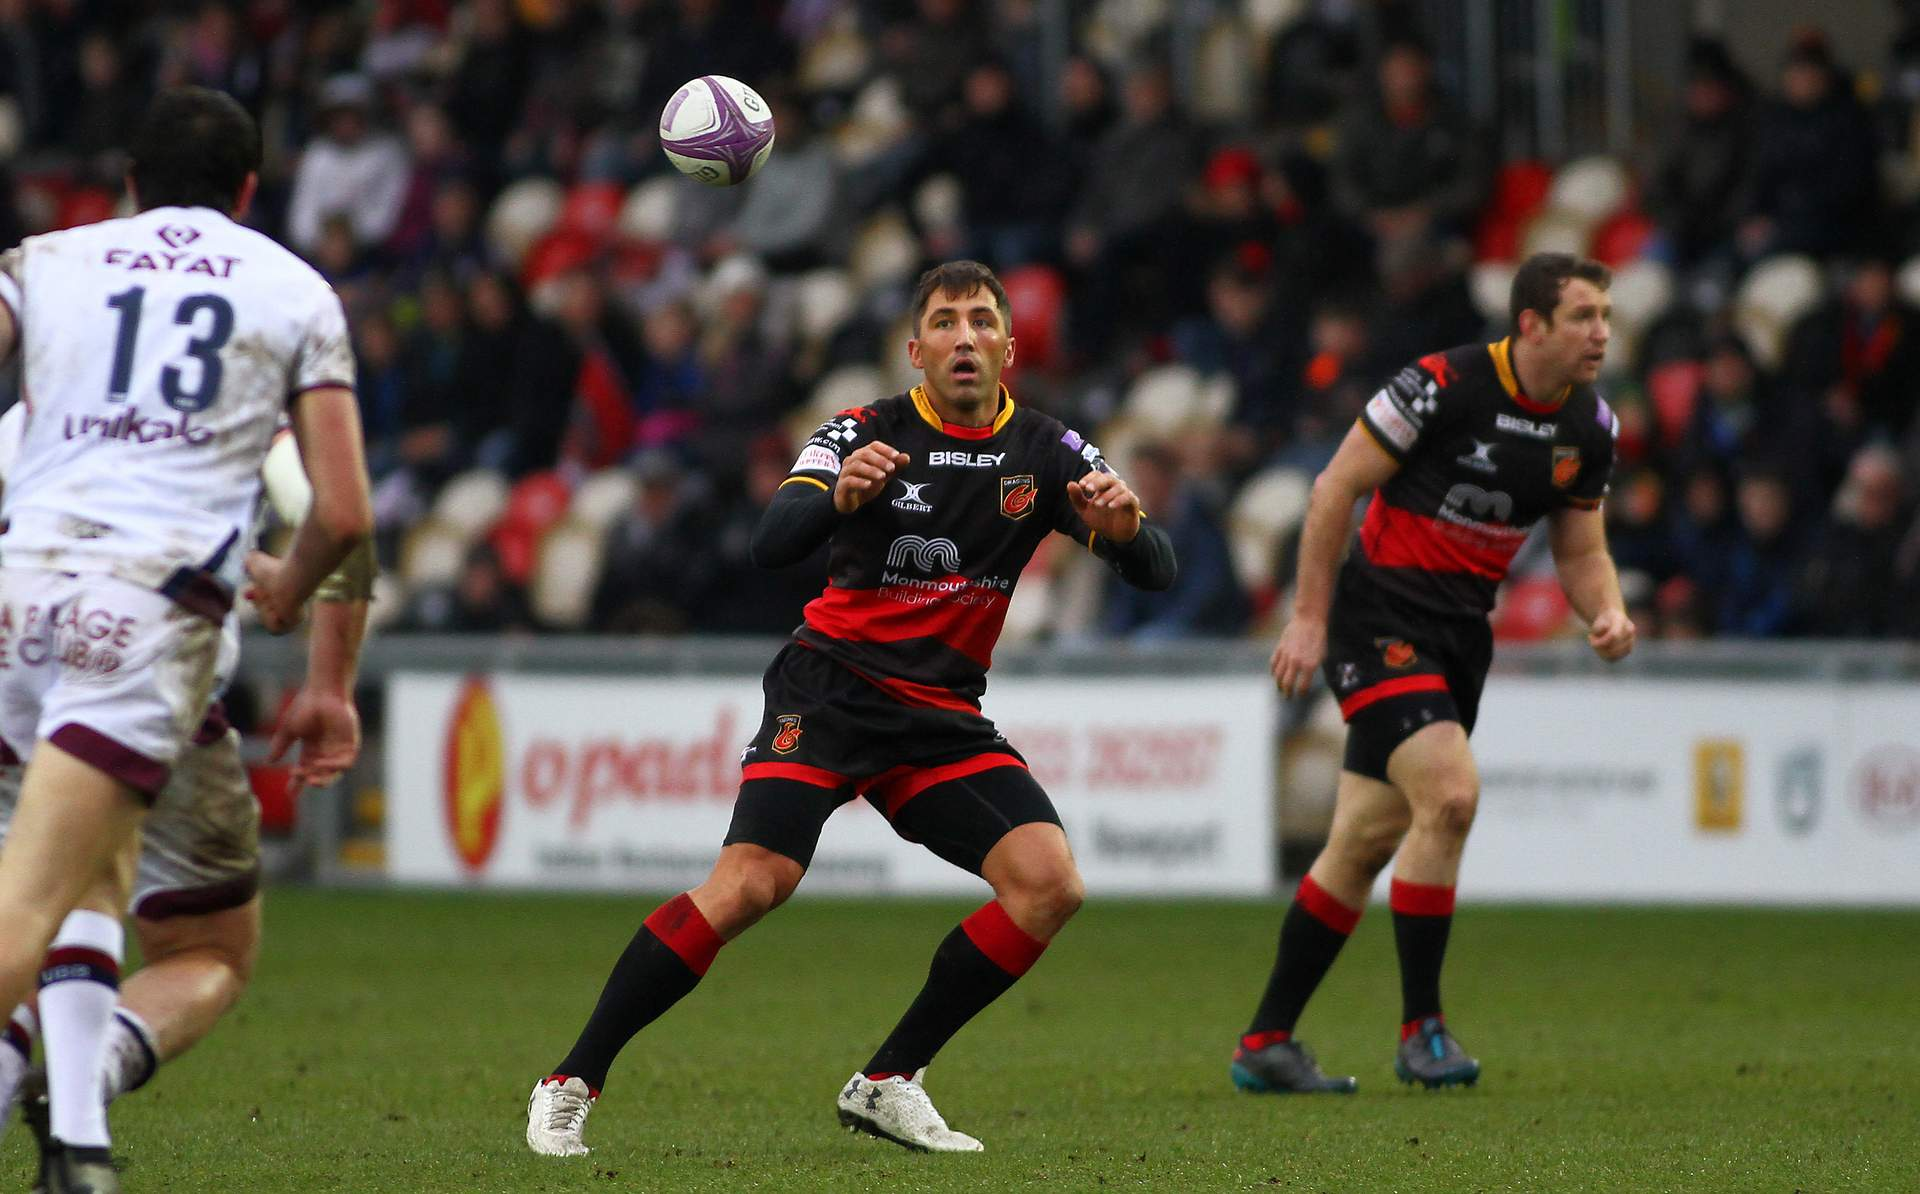 REPORT: Dragons claim stunning bonus point win